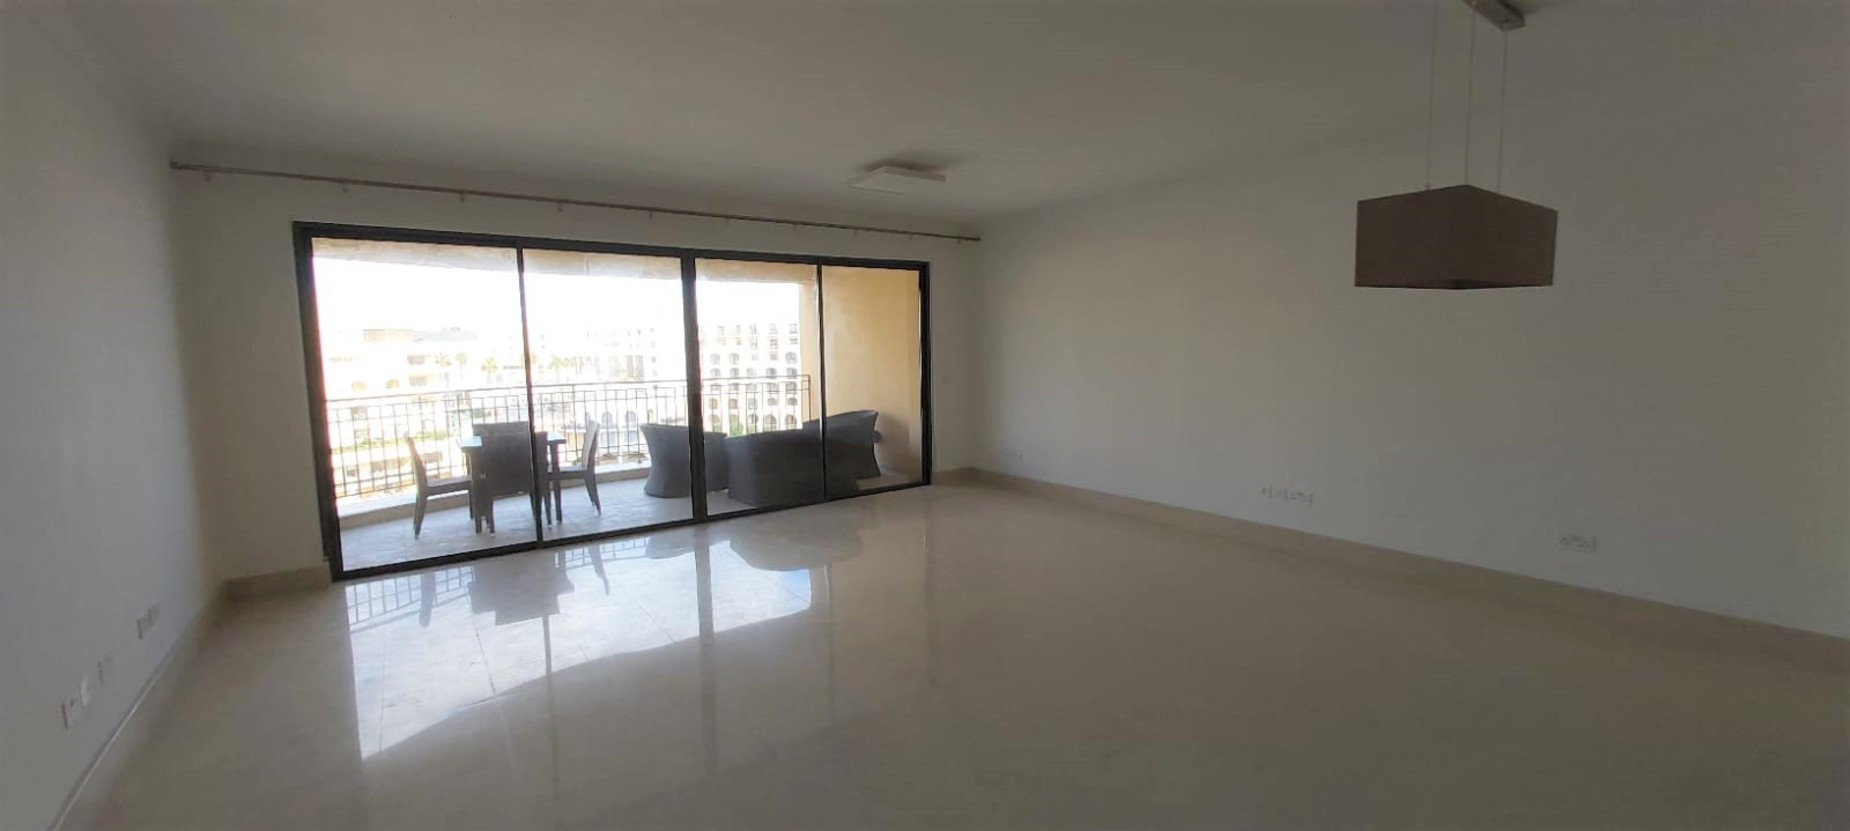 3 bed Apartment For Sale in St Julians,  - thumb 4